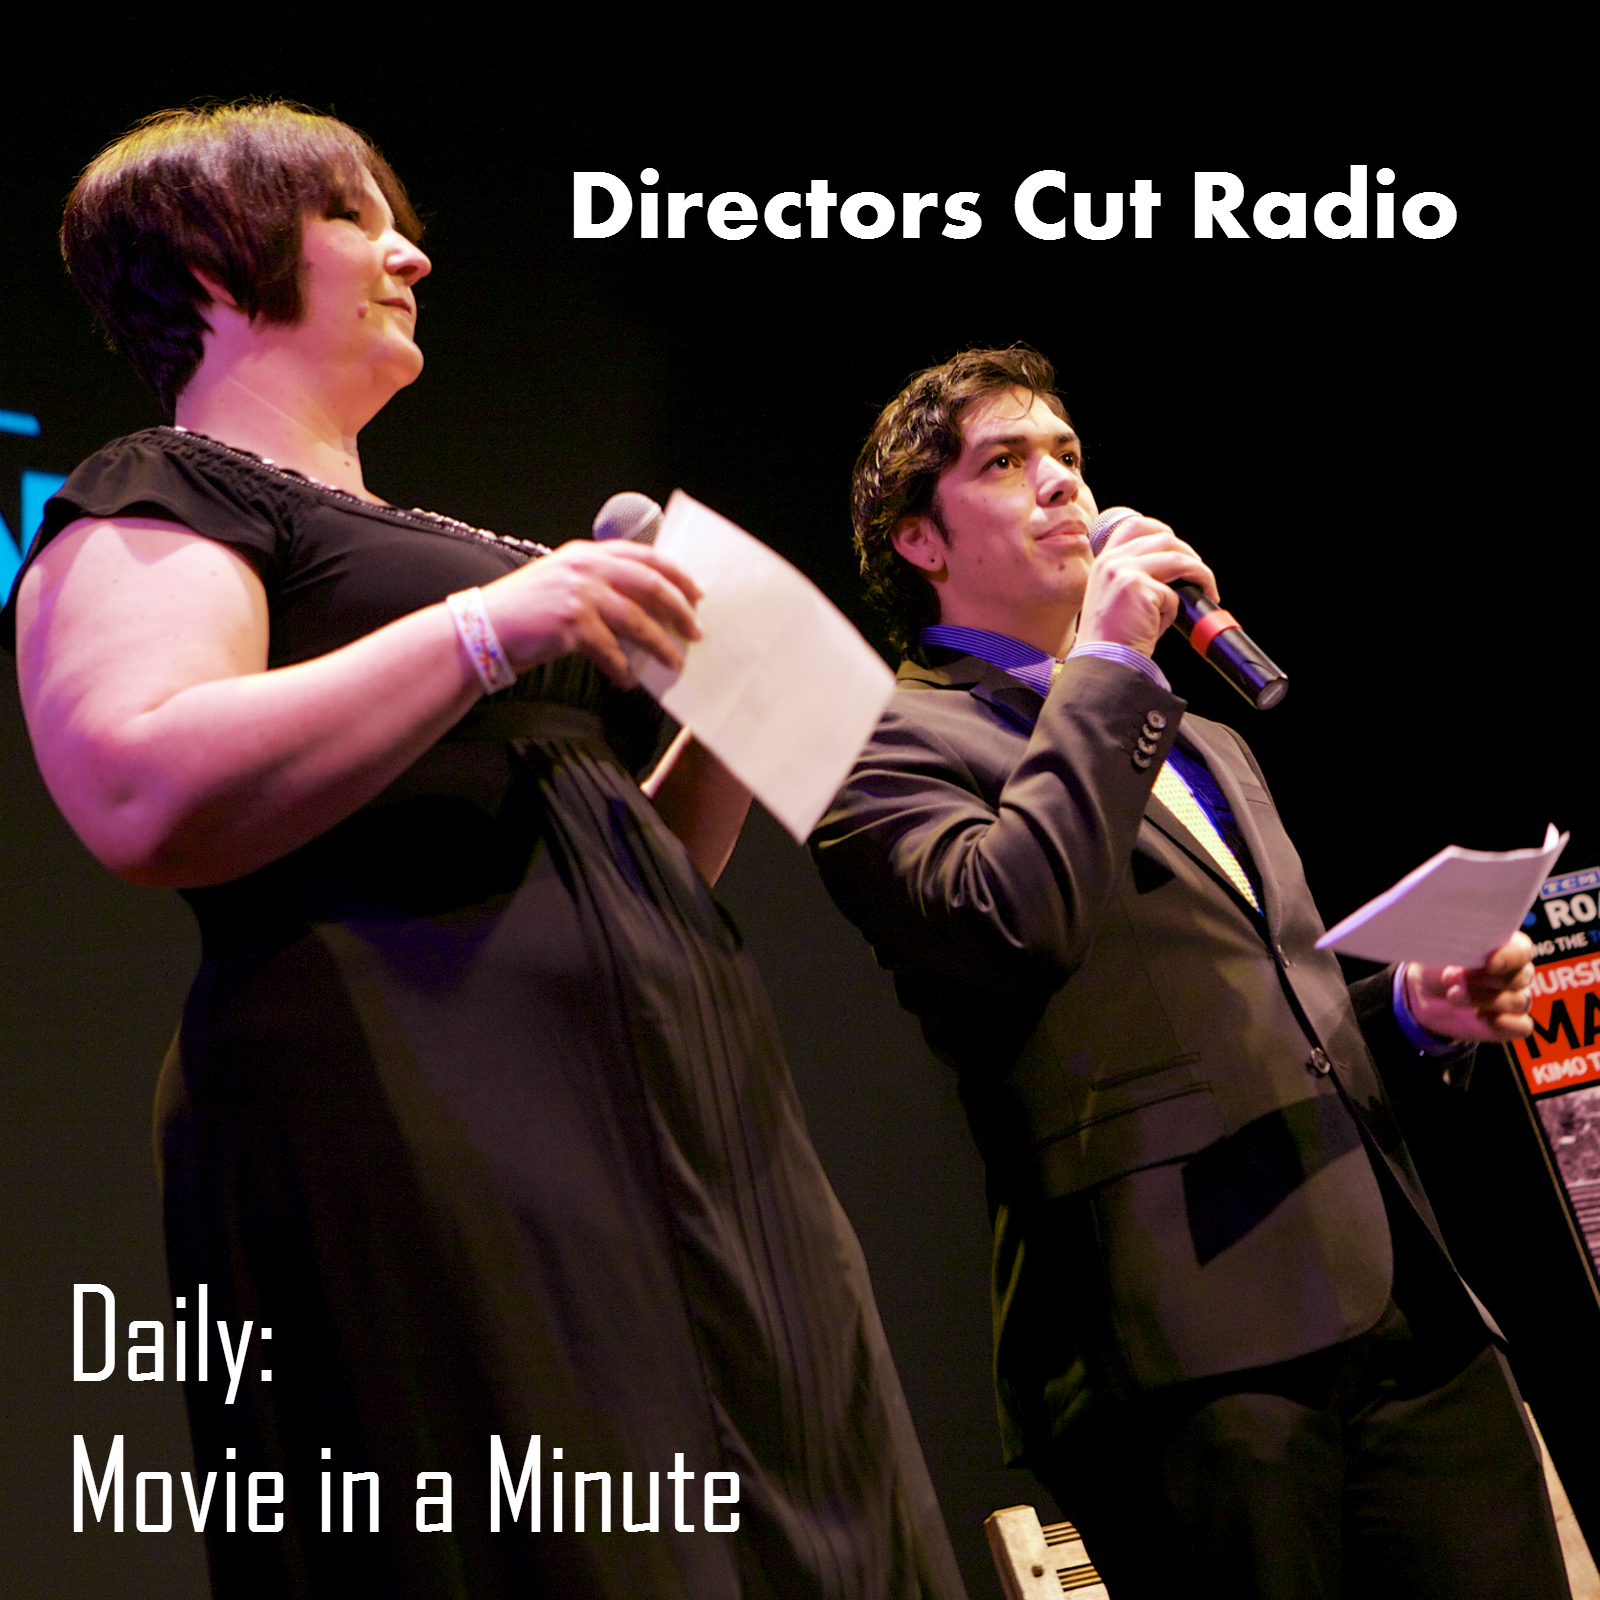 Directors Cut Radio Daily Movie in a Minute